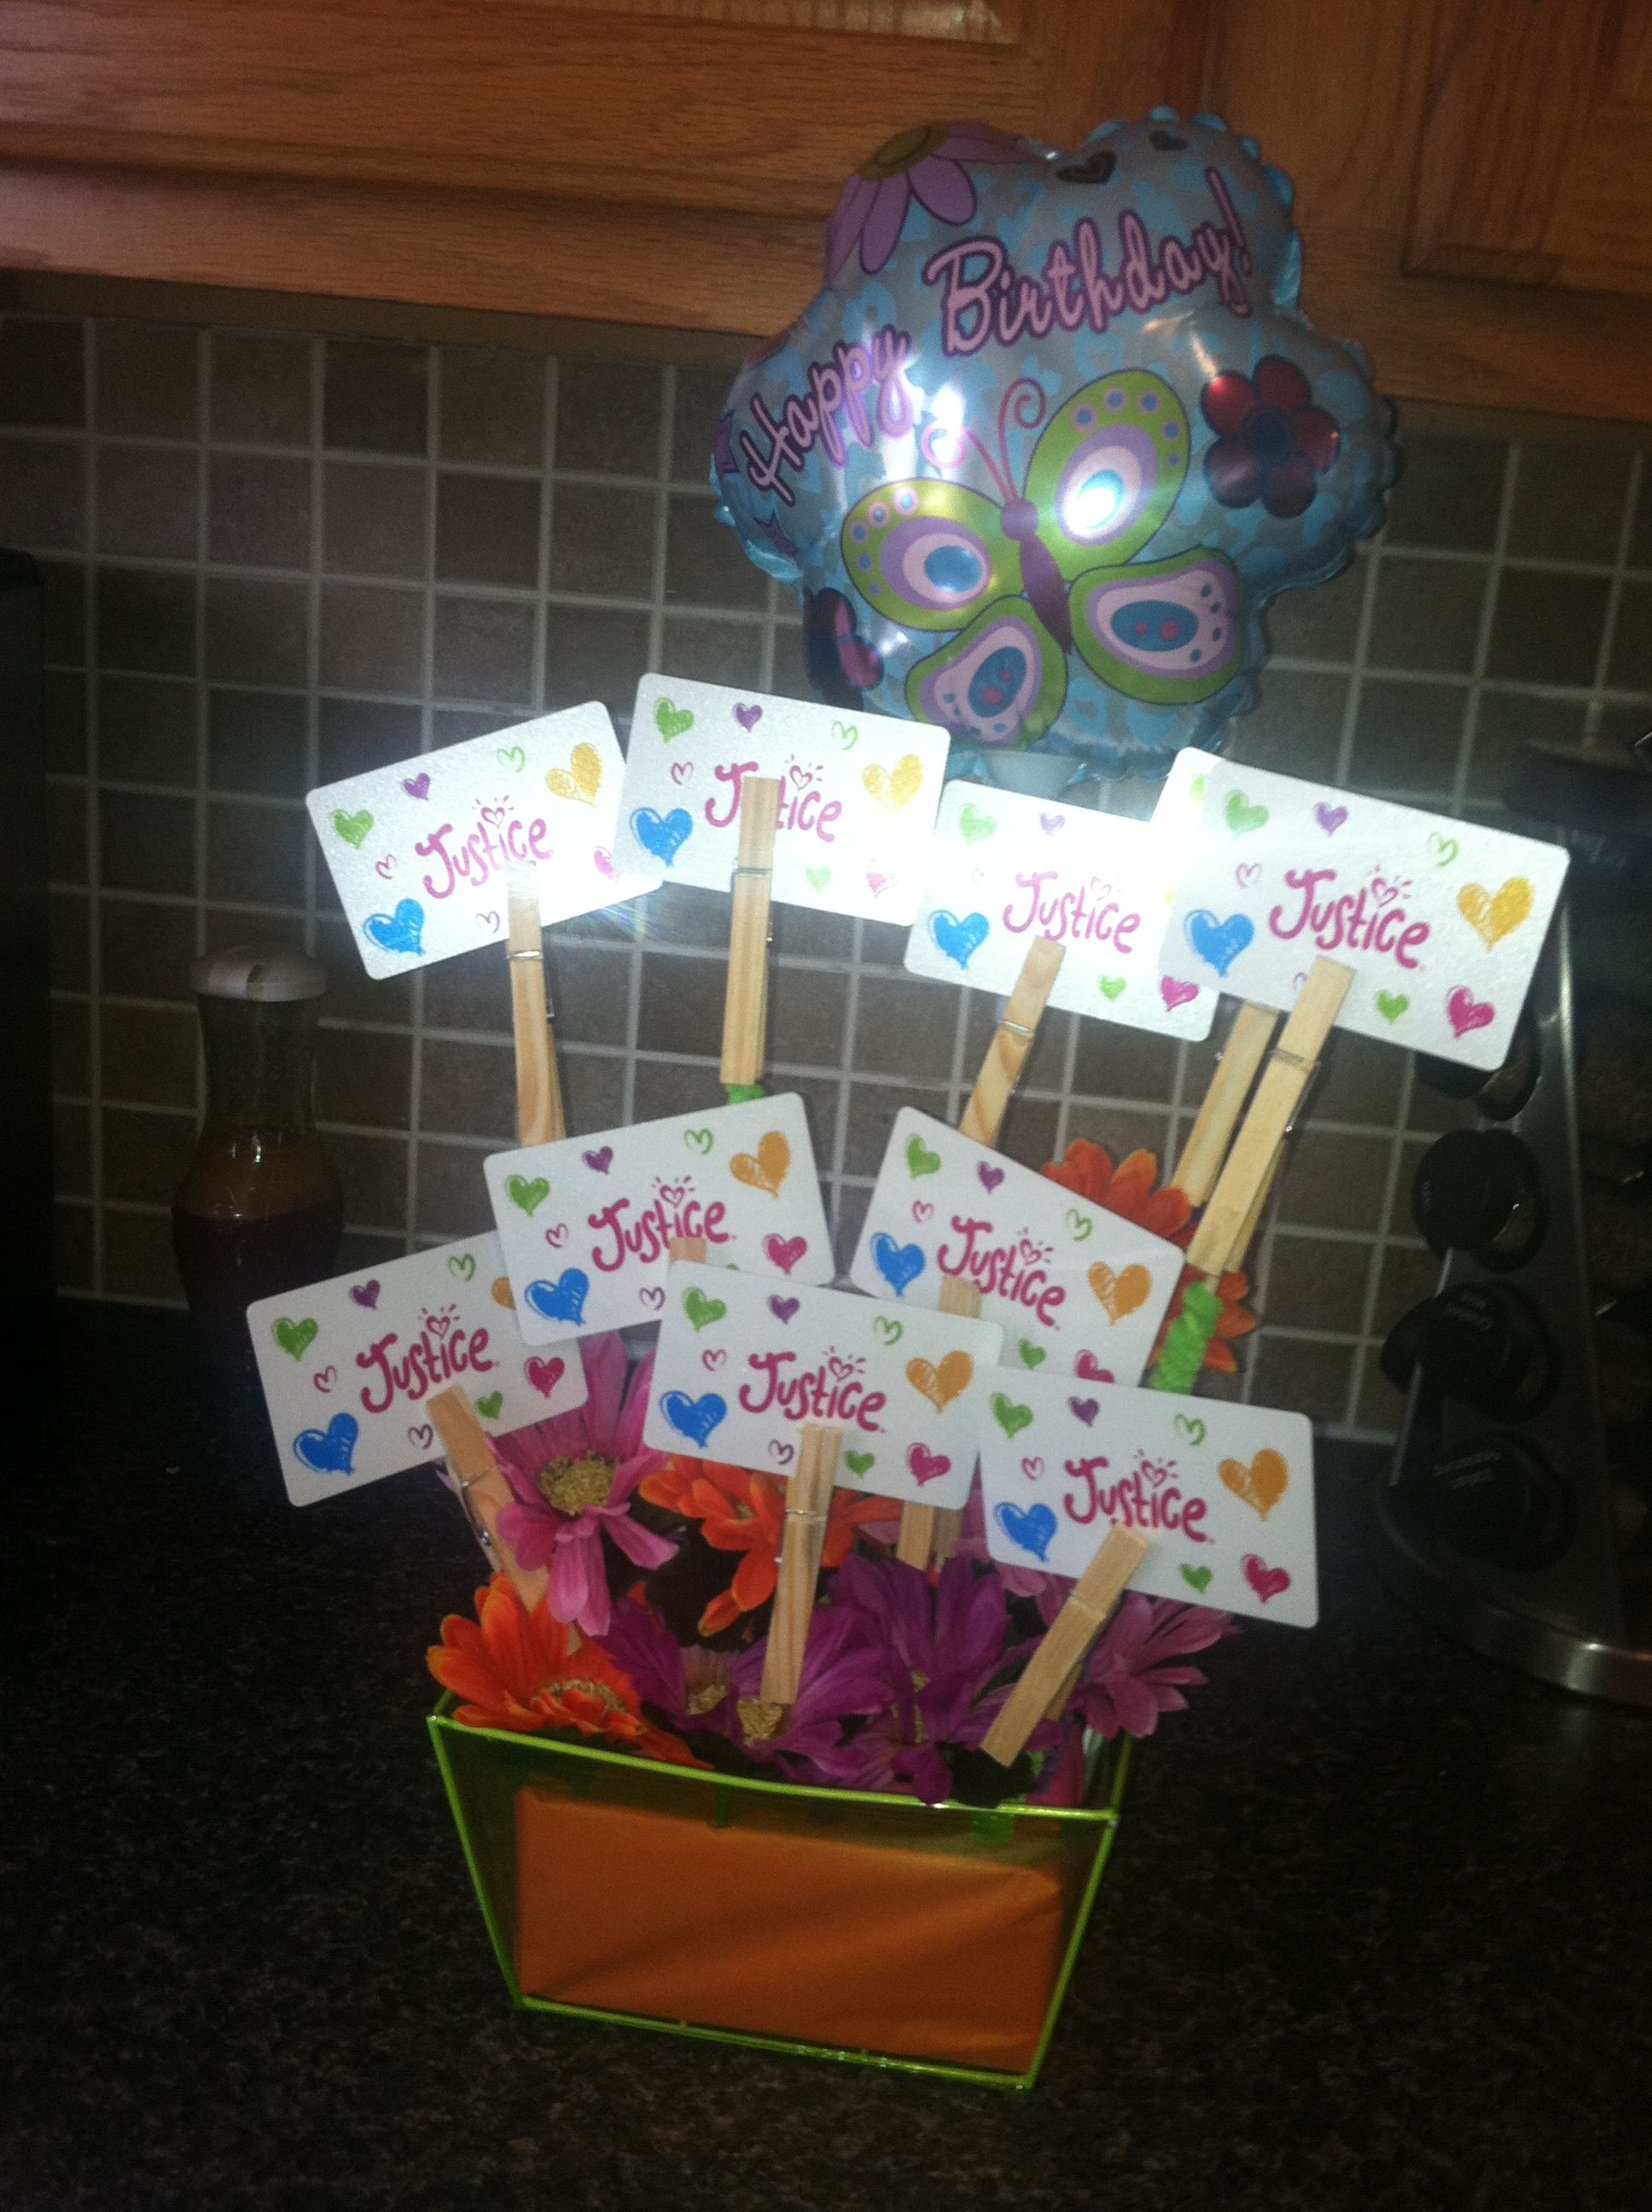 Cool Way To Give A Gift Card Hot Glue Clothes Pins Onto Wooden Skewers Stick In Floral Foam And Put In Cute Bask Neat Gift Ideas Crafty Gifts Creative Gifts